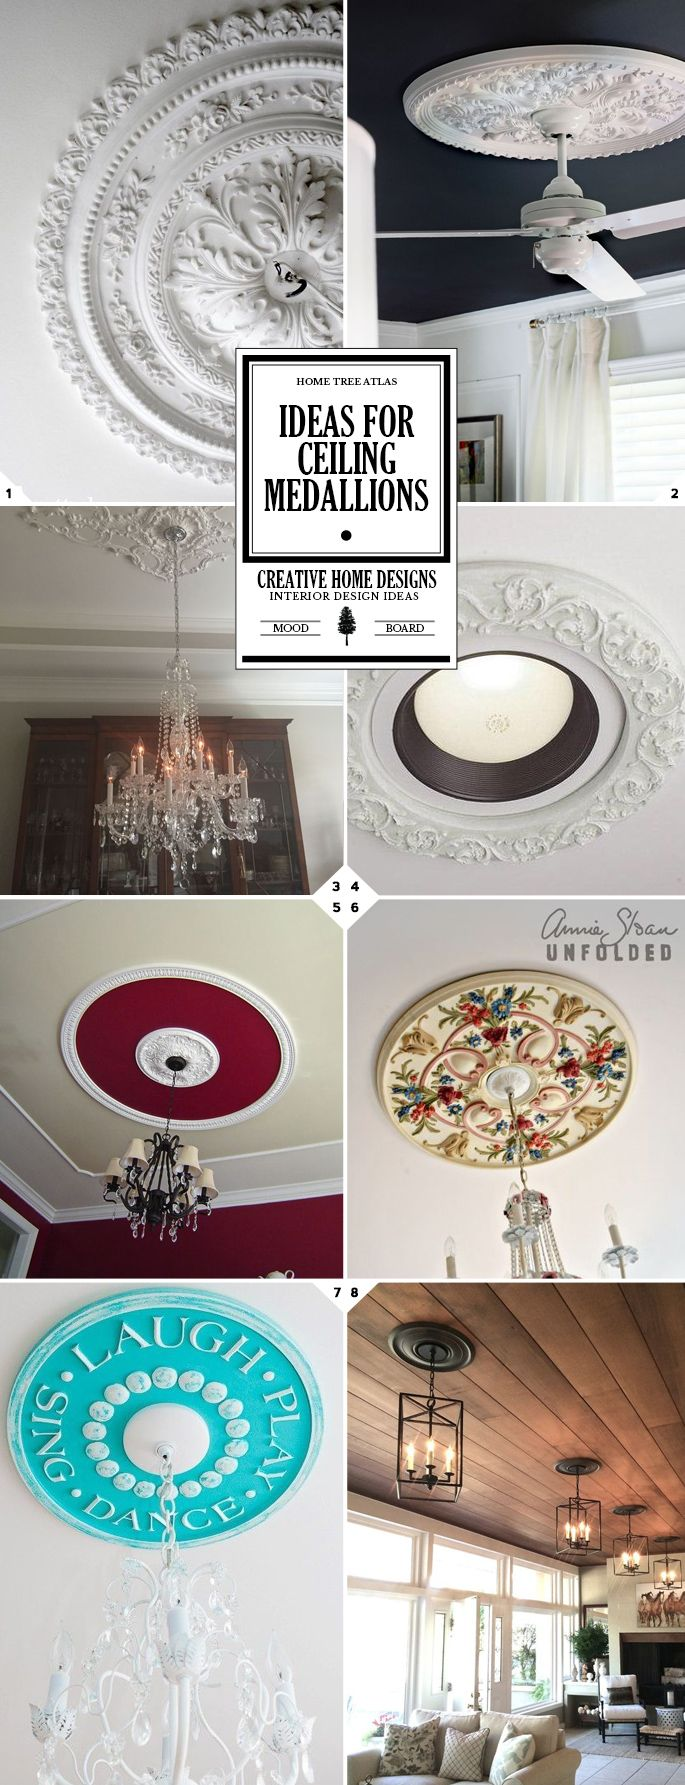 A ceiling medallion, originally called a ceiling rose, comes from the early 1500s when King Henry the VIII ruled. The ceiling rose acted as a symbol of secrecy, and would be carved over a meeting table – meaning you could speak freely. These days they act as decorative design elements in a room. Where To […]